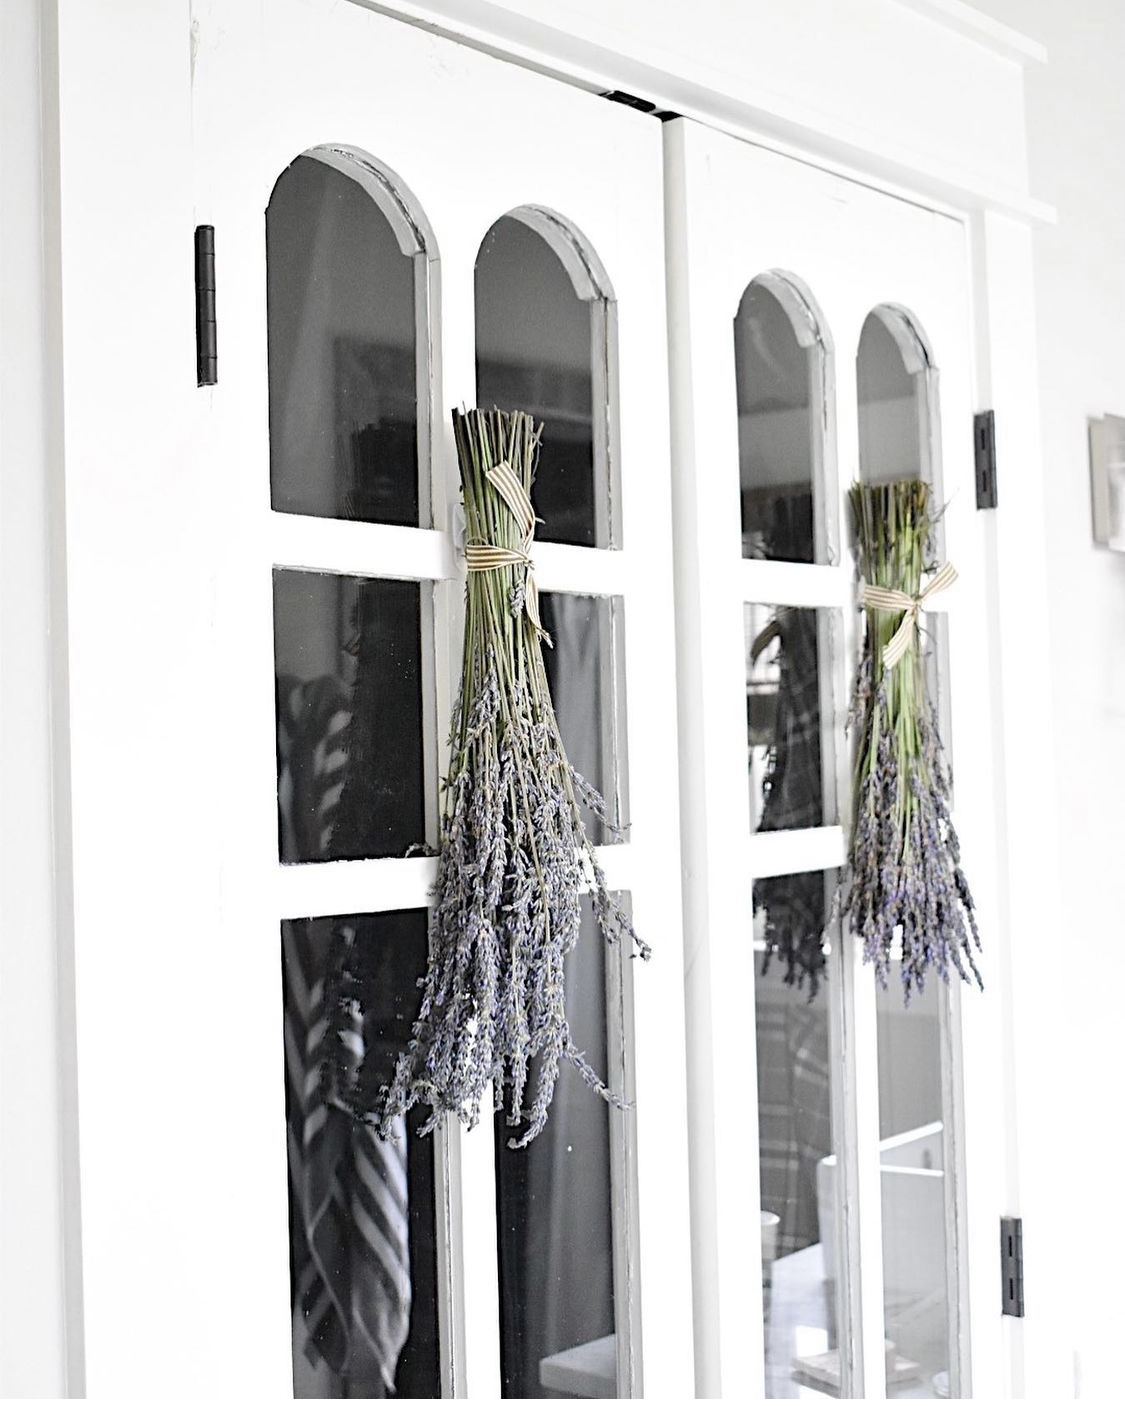 vintage closet doors with windo panes and bundles of lavender hanging on door for decoration